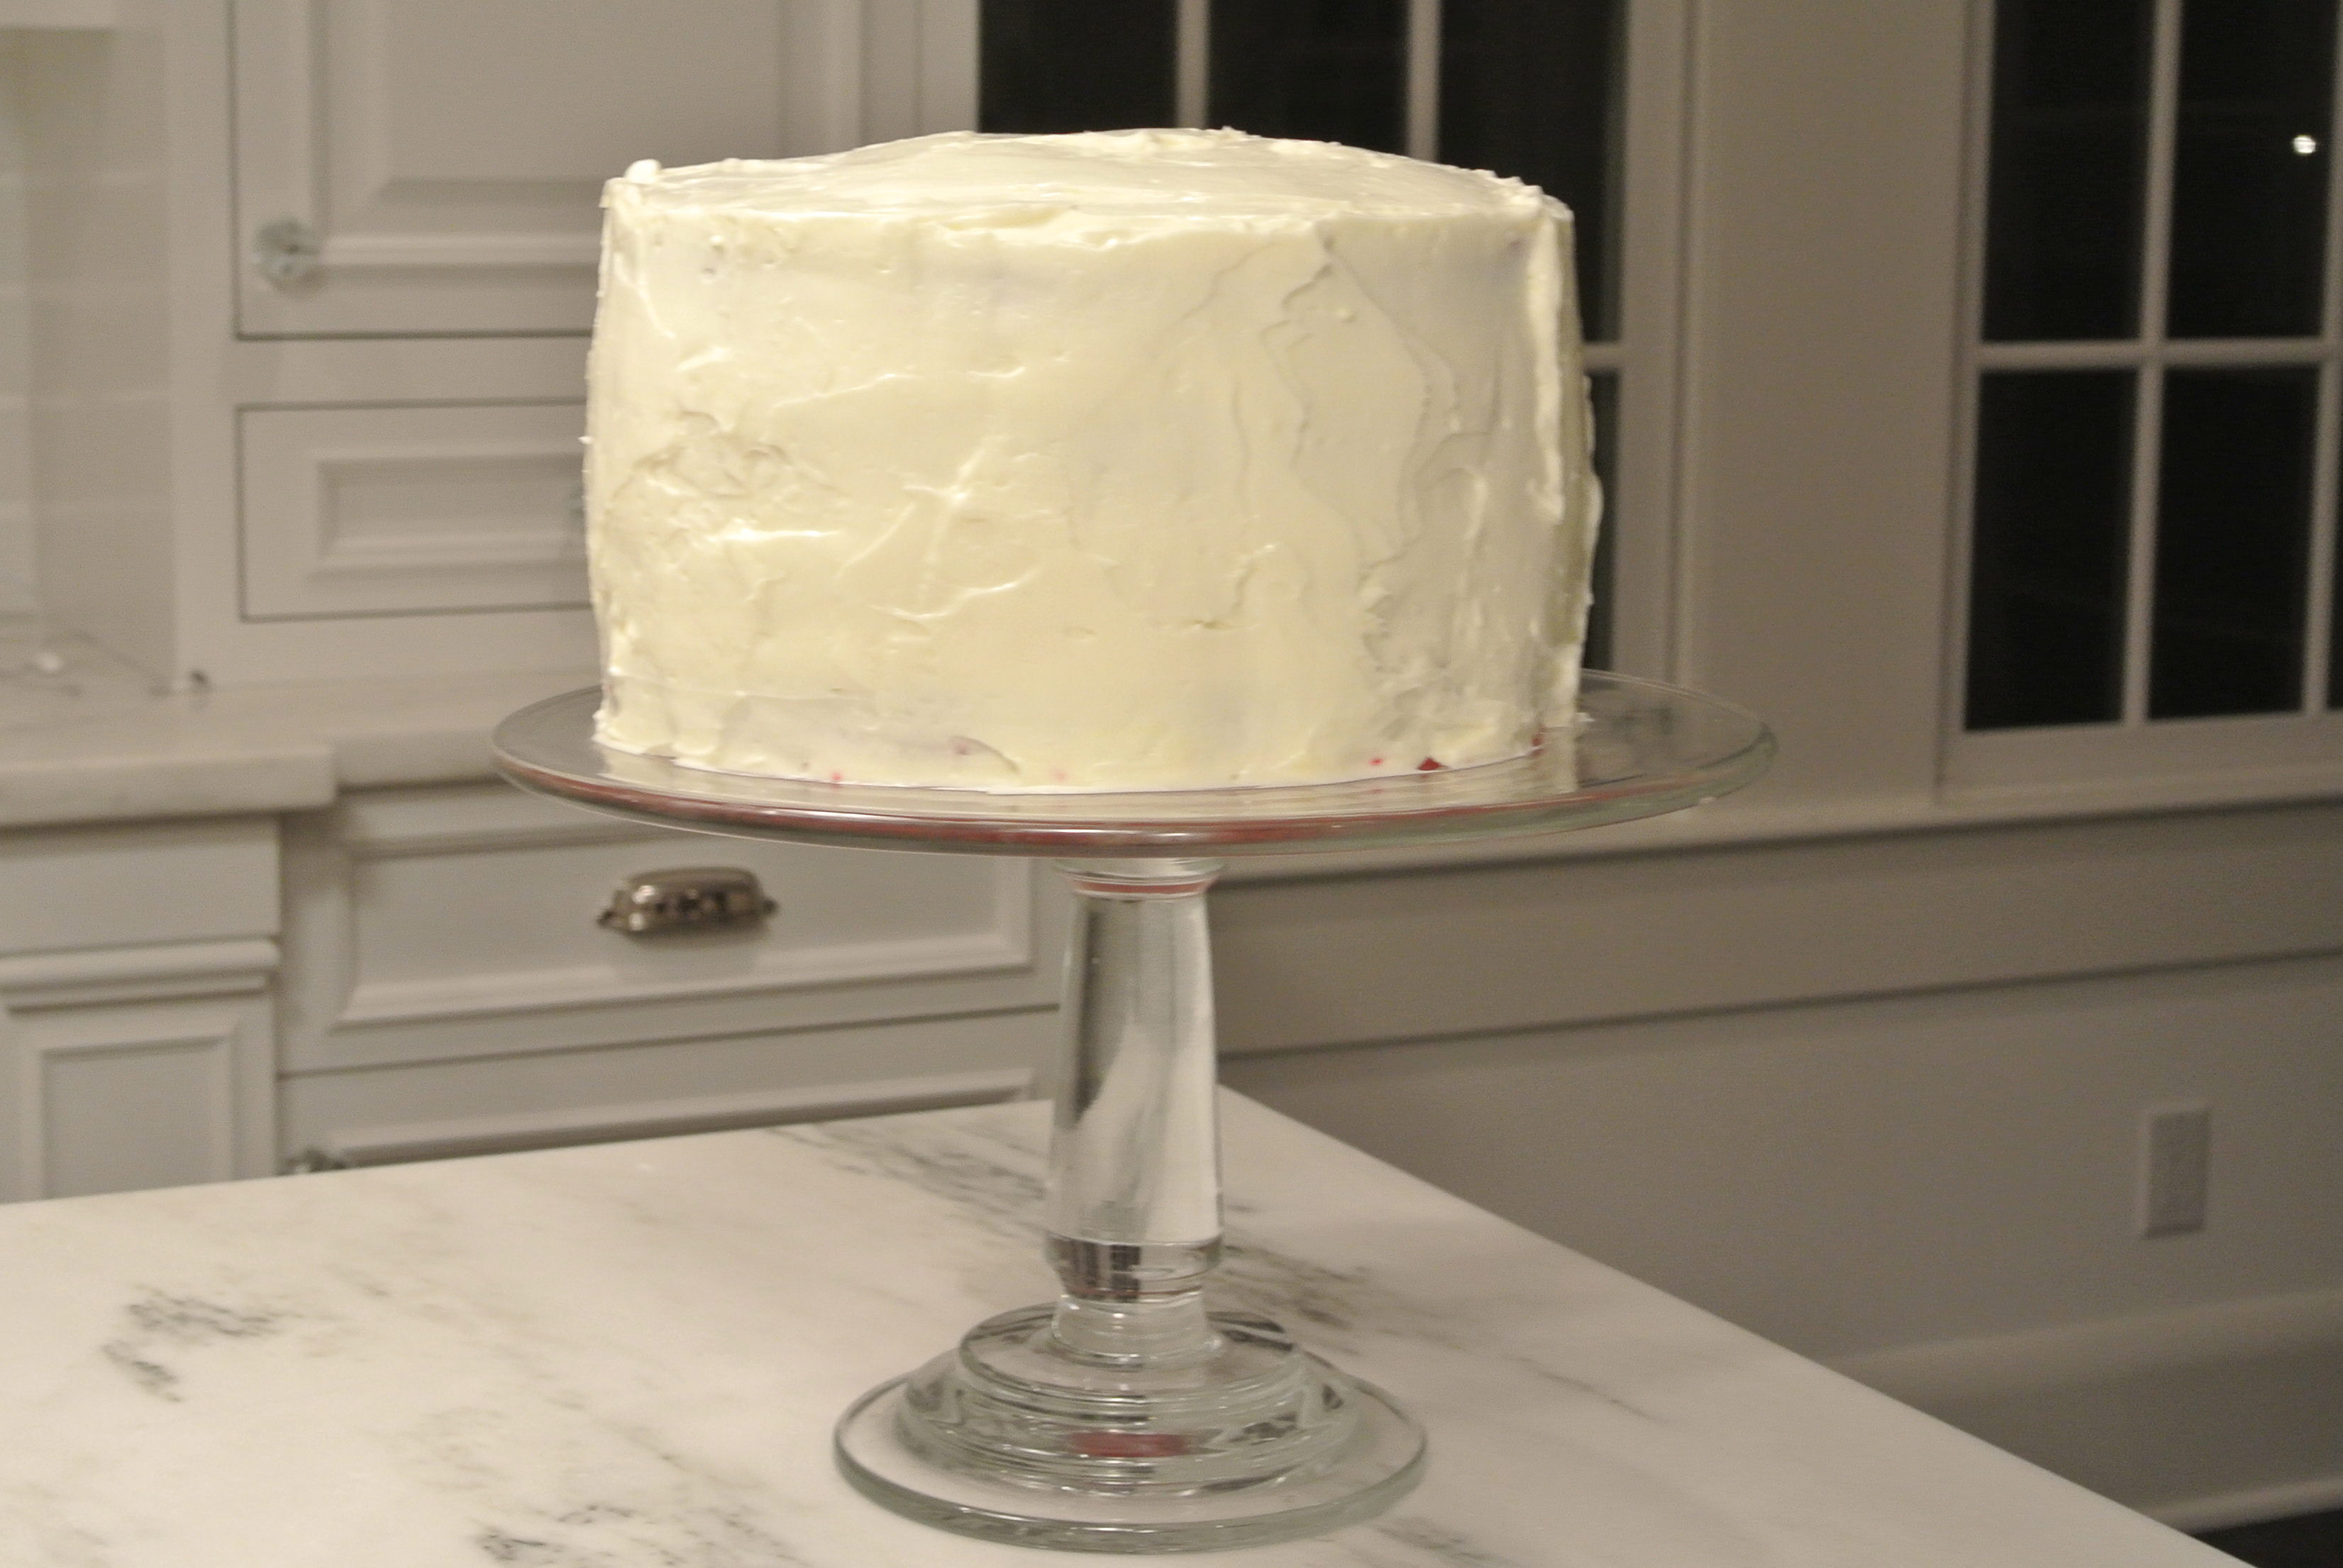 red velvet cake, cream cheese frosting, cake